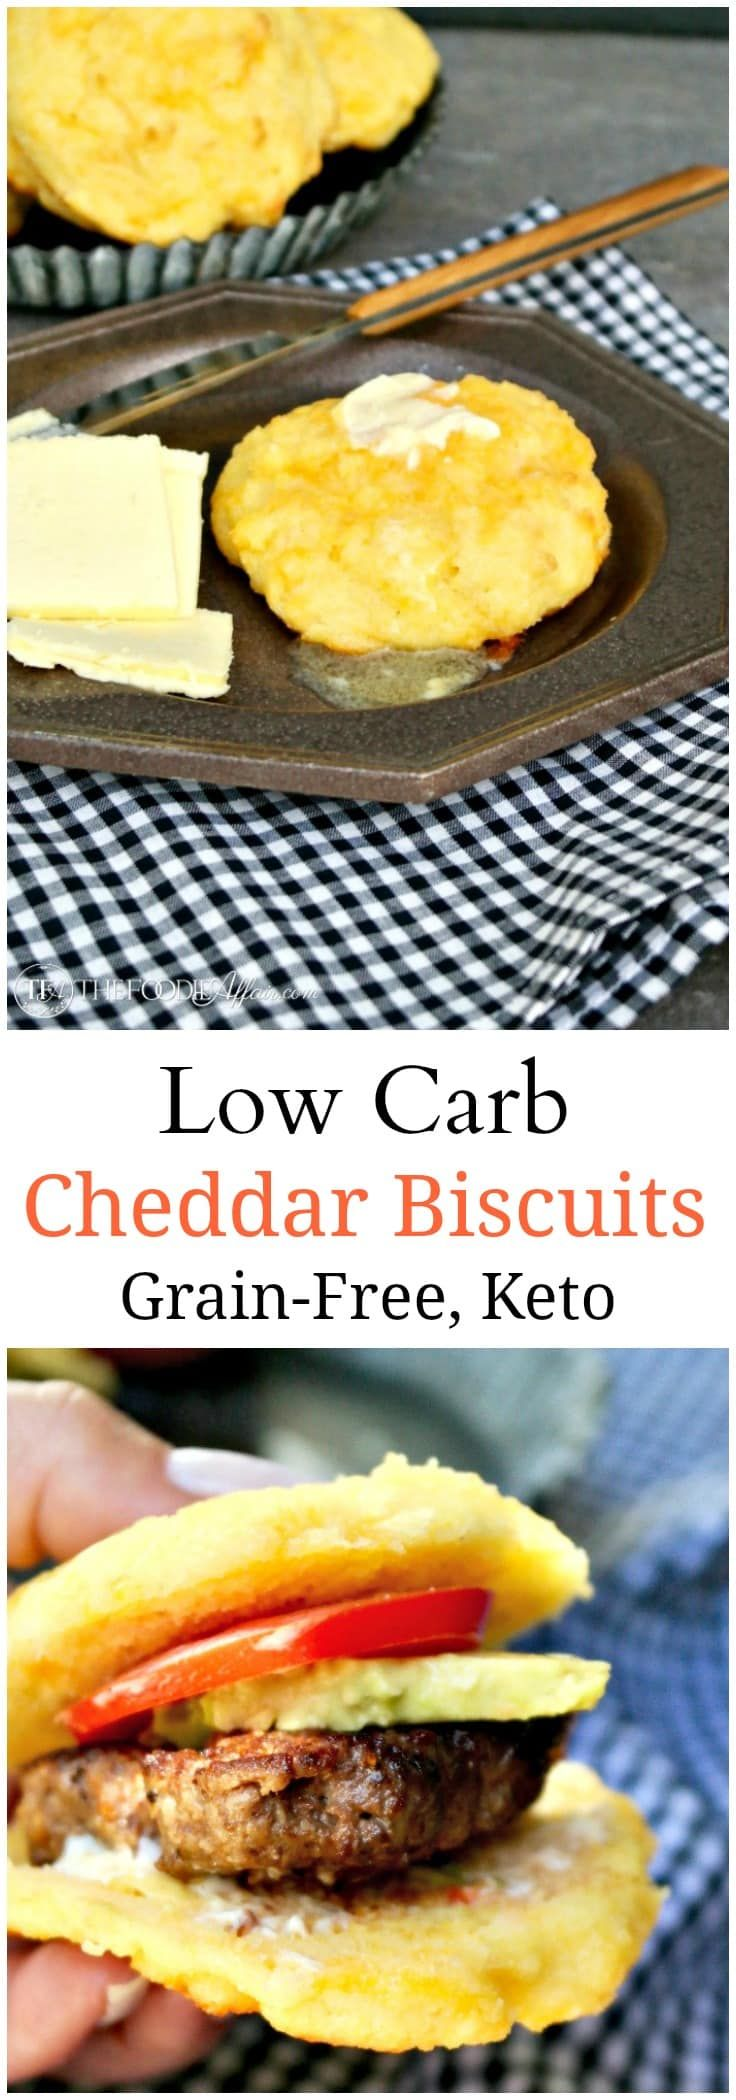 Simple tender low carb cheddar biscuits are grain and sugar free. Enjoy with a pat of butter or split in half and add your favorite filling!